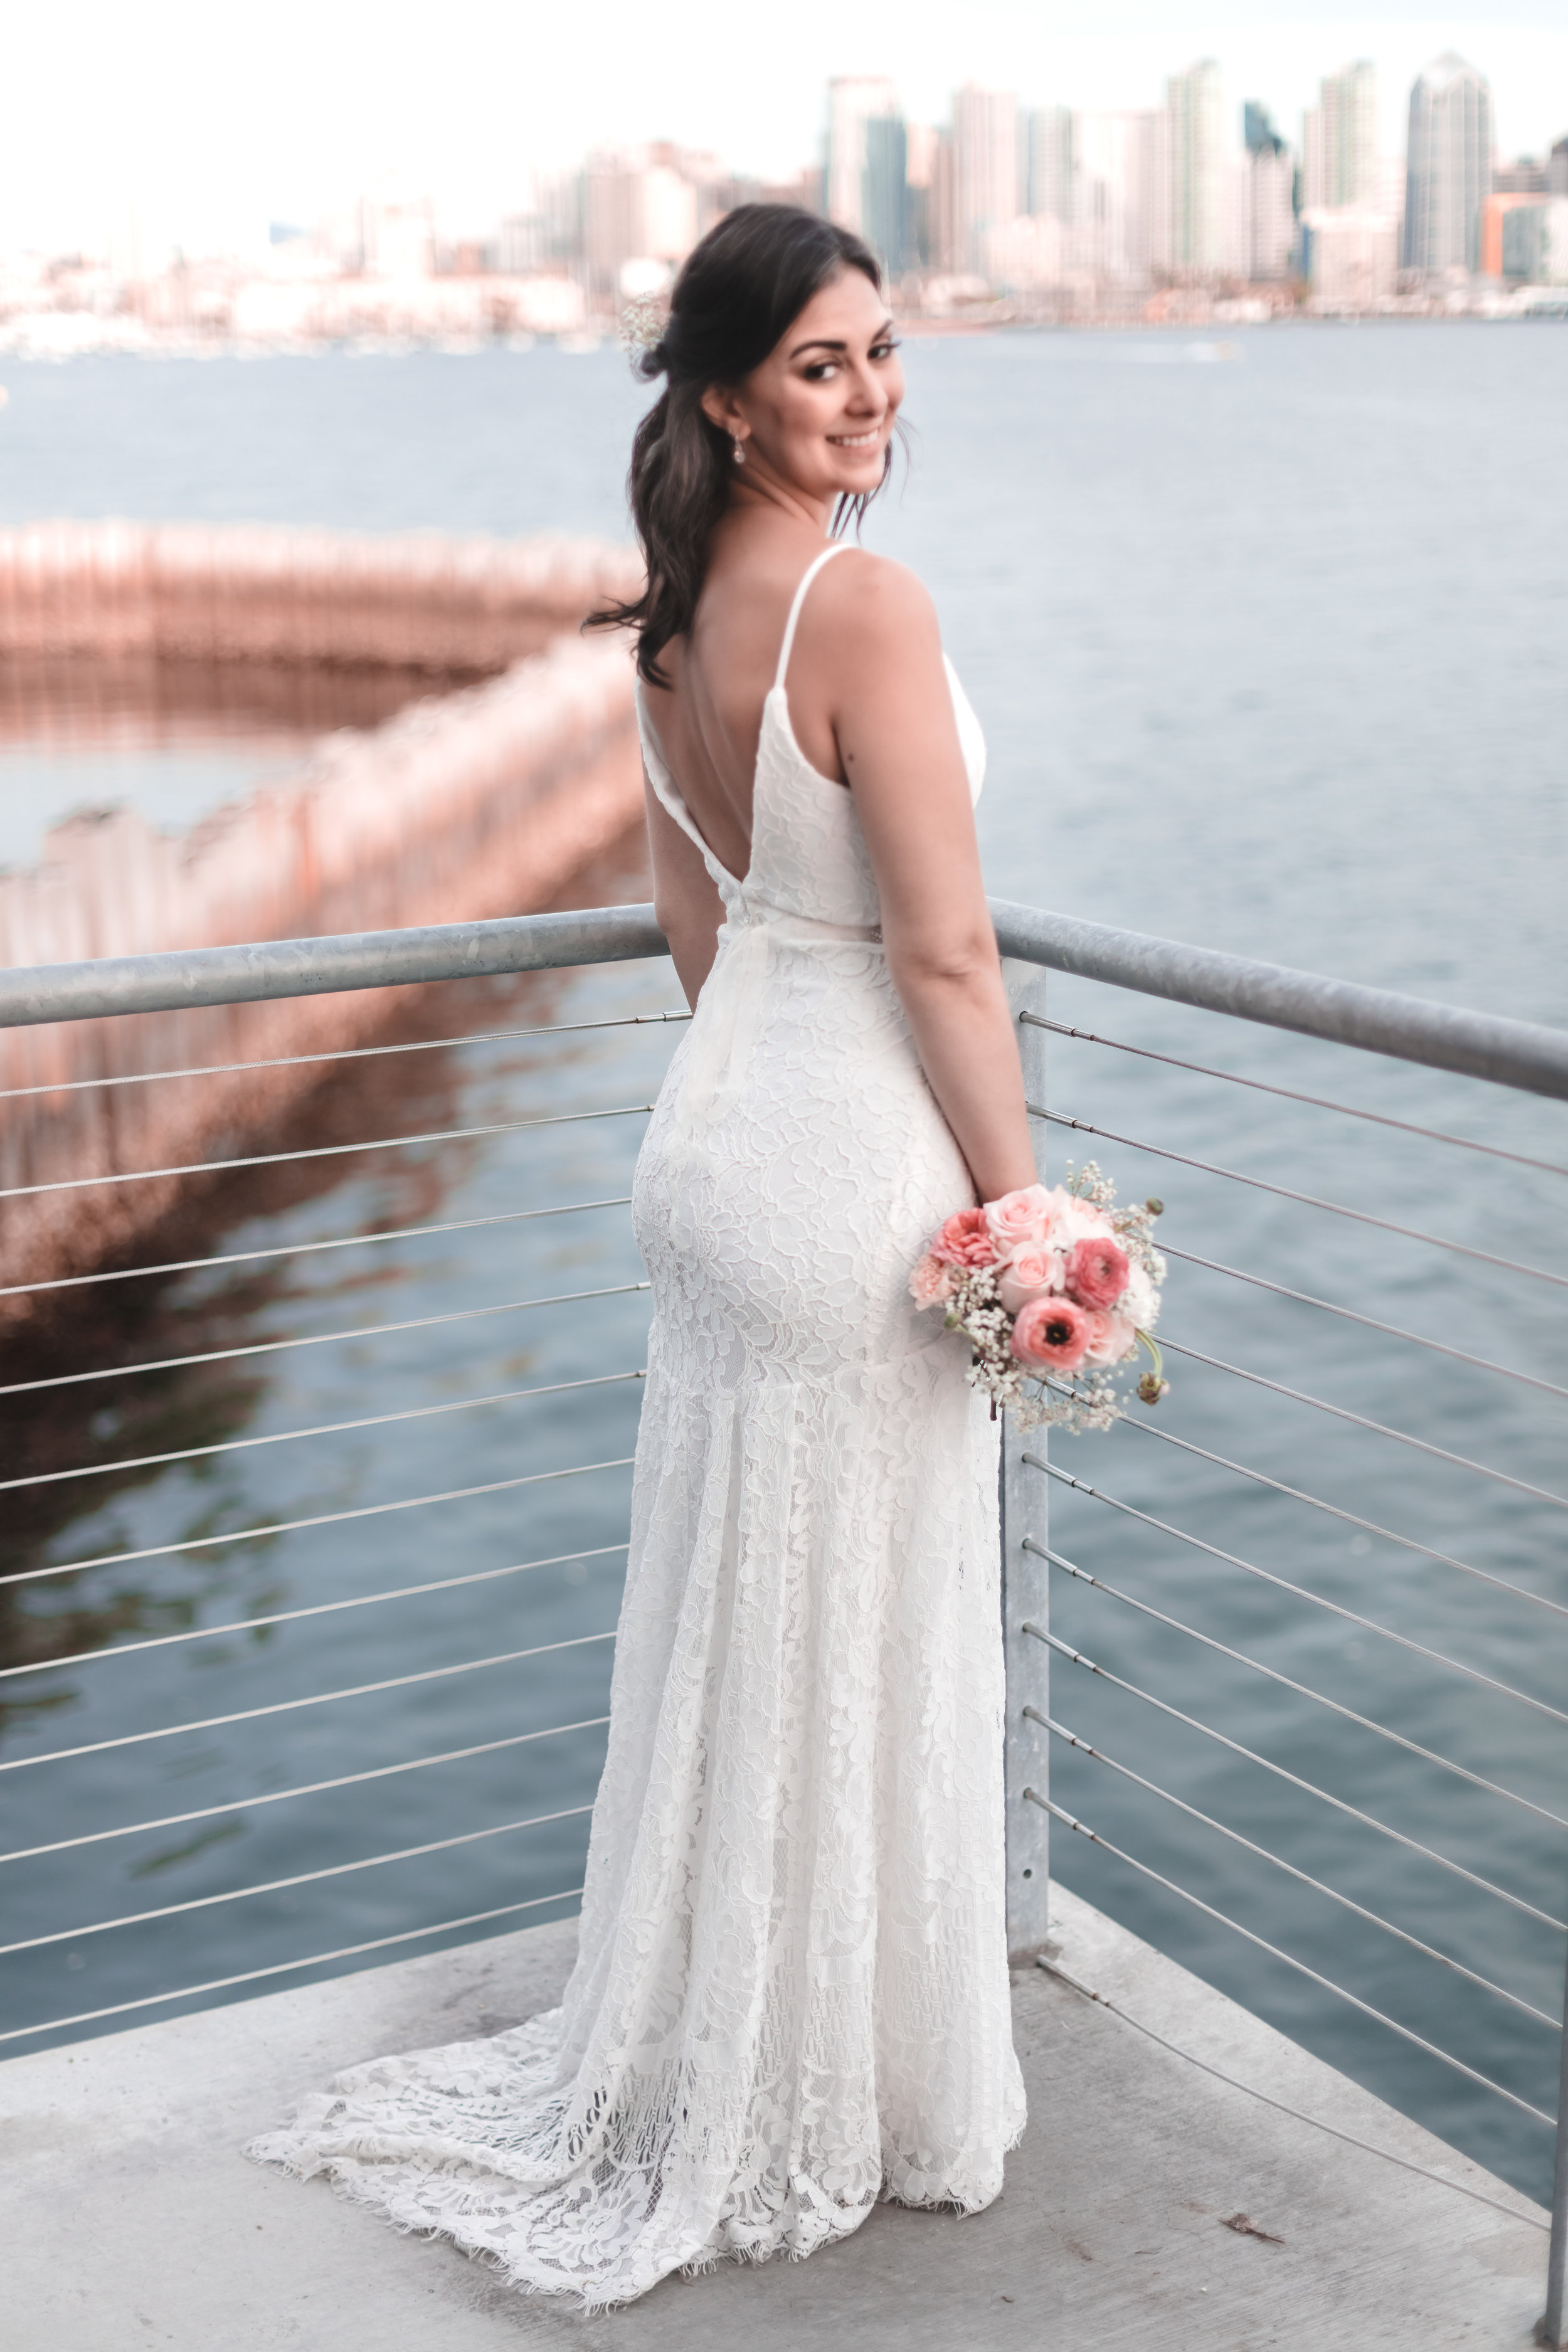 Bridal Portraits in San Diego Harbor